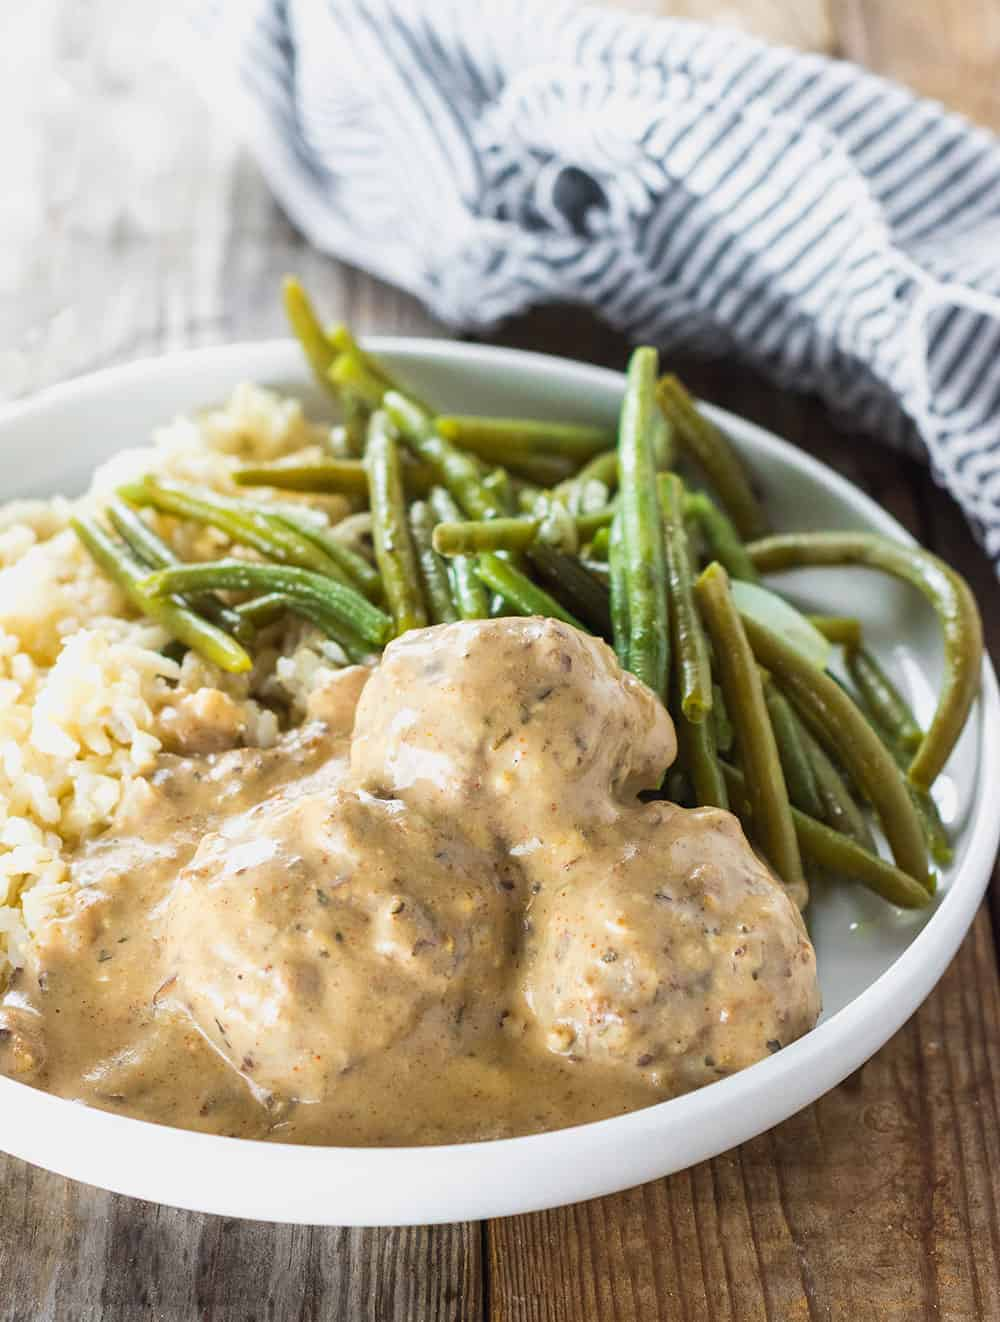 Lentil Meatballs smothered in cashew gravy with green beans and rice on a white plate